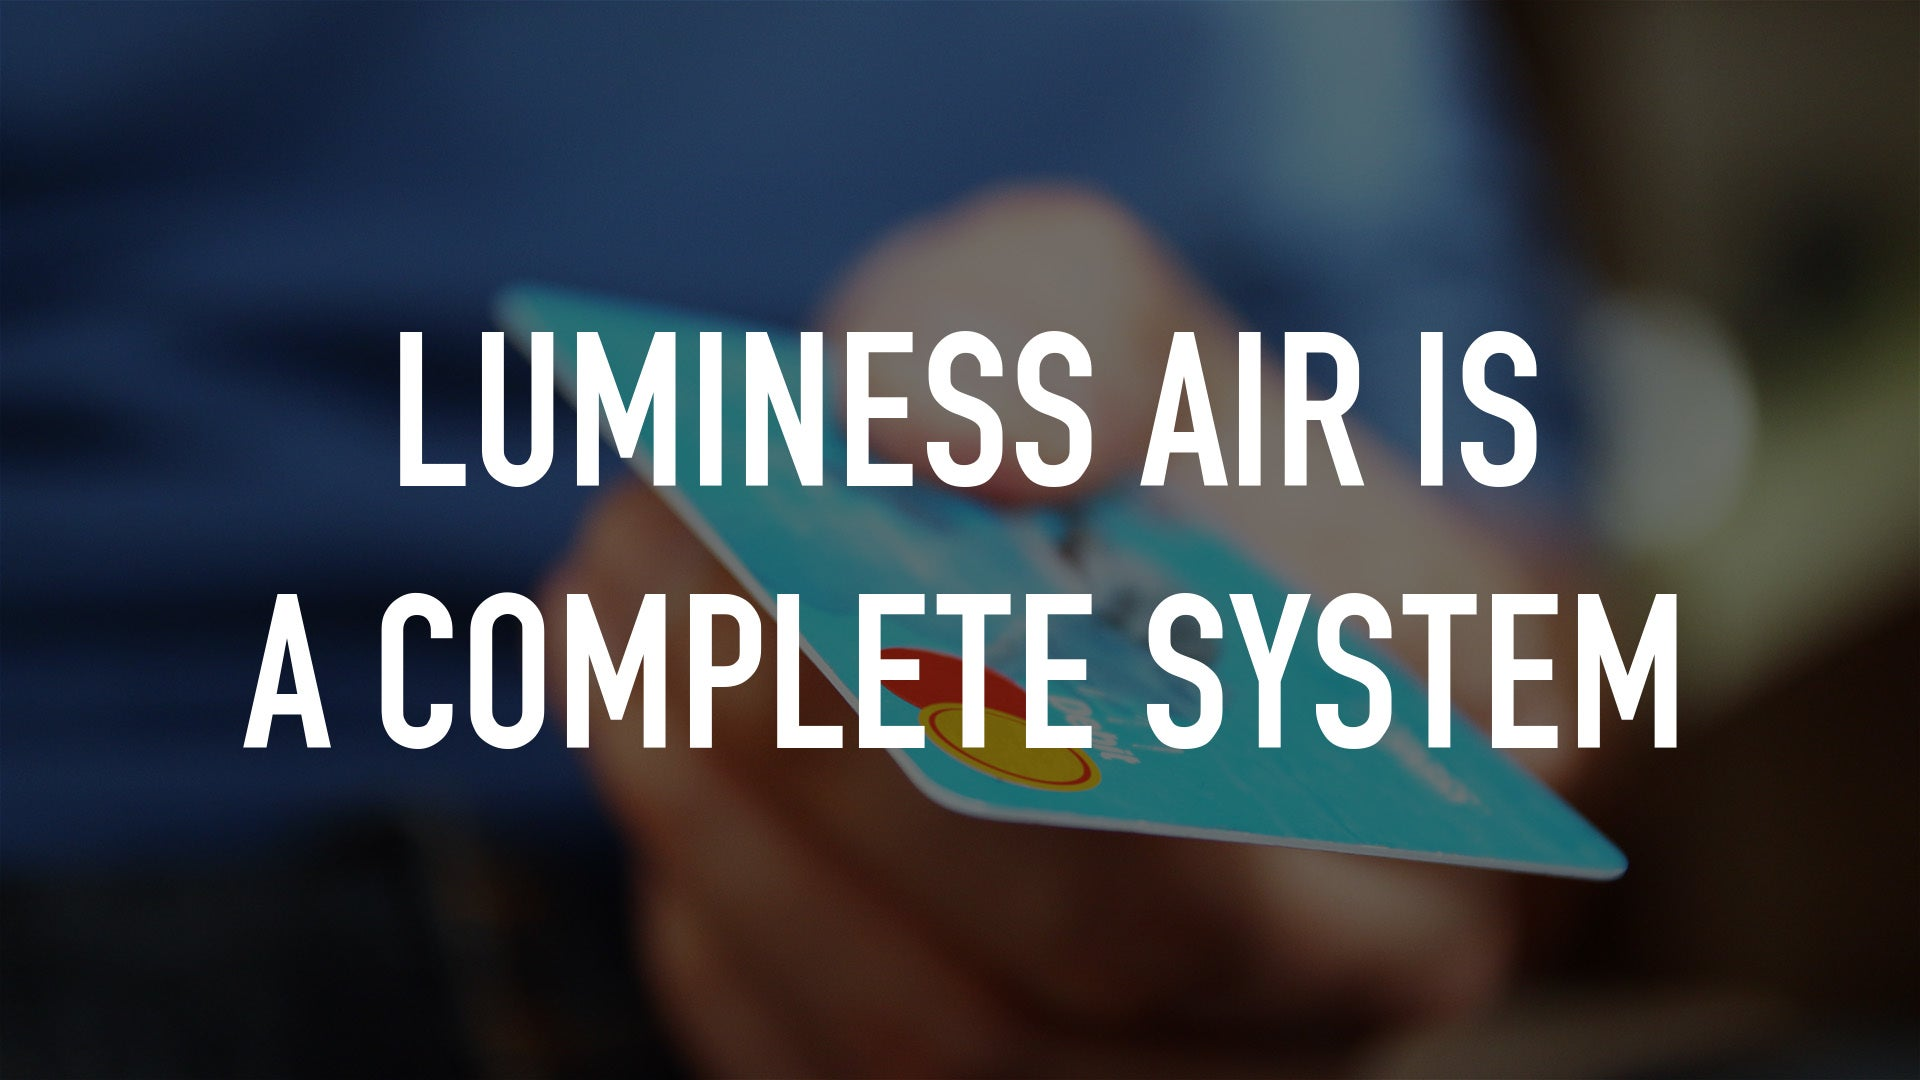 Luminess Air is a complete system